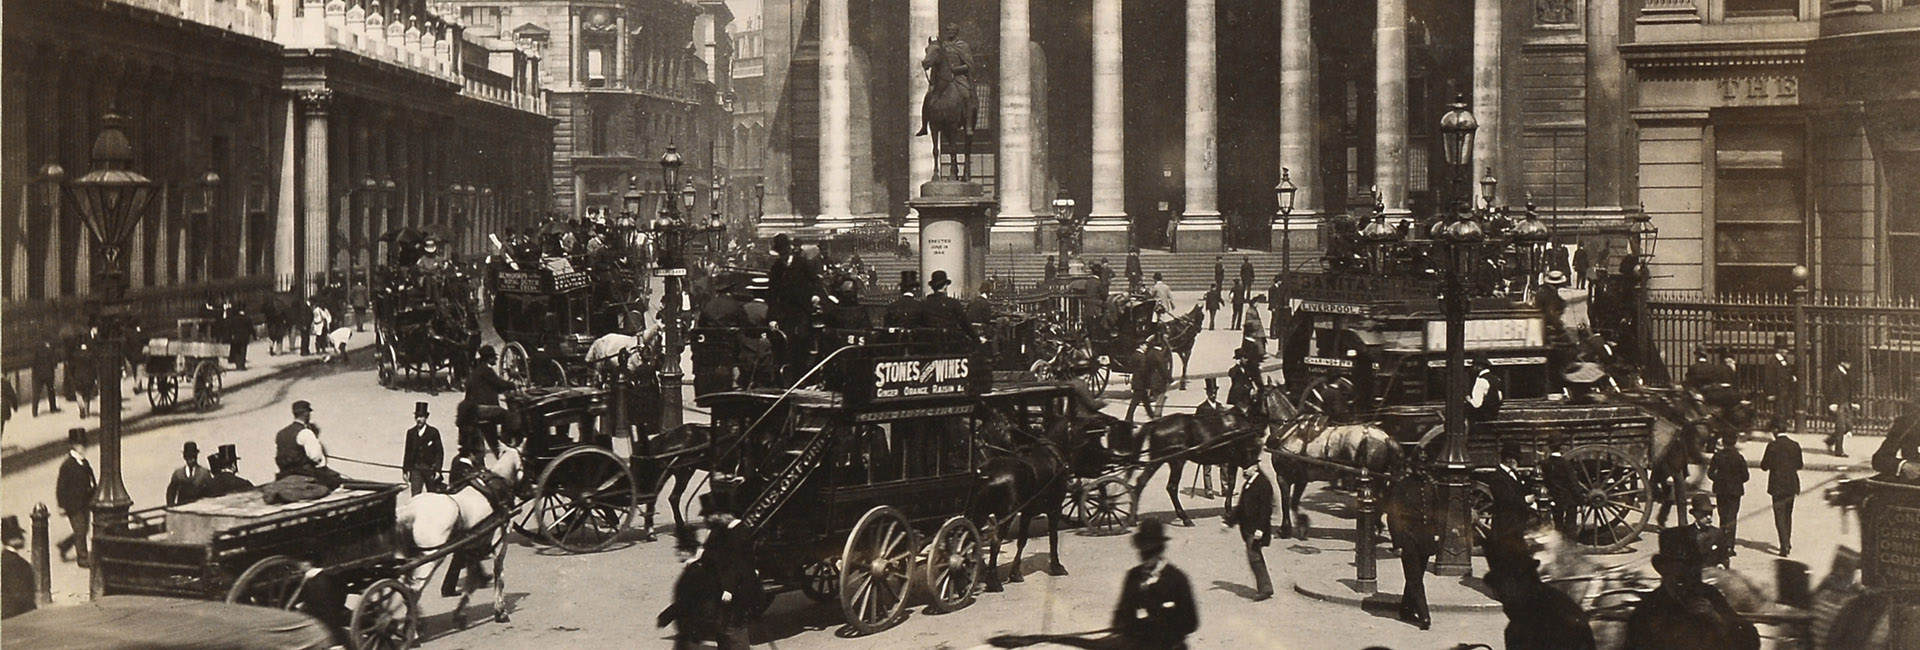 Bank & Royal Exchange 1895 [George Washington Wilson (1823-1893)]